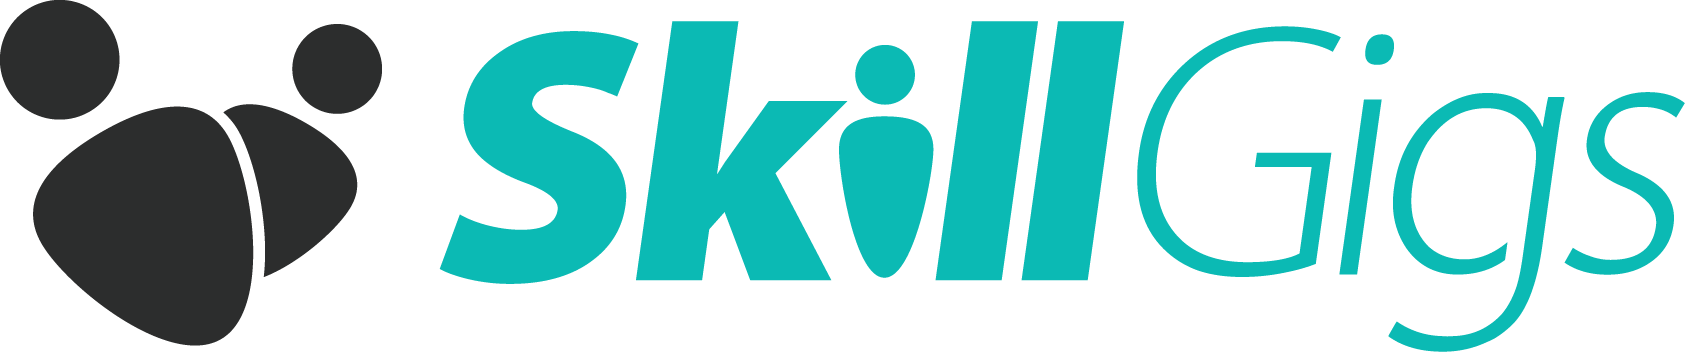 skillgigs-logo-solid-two.png